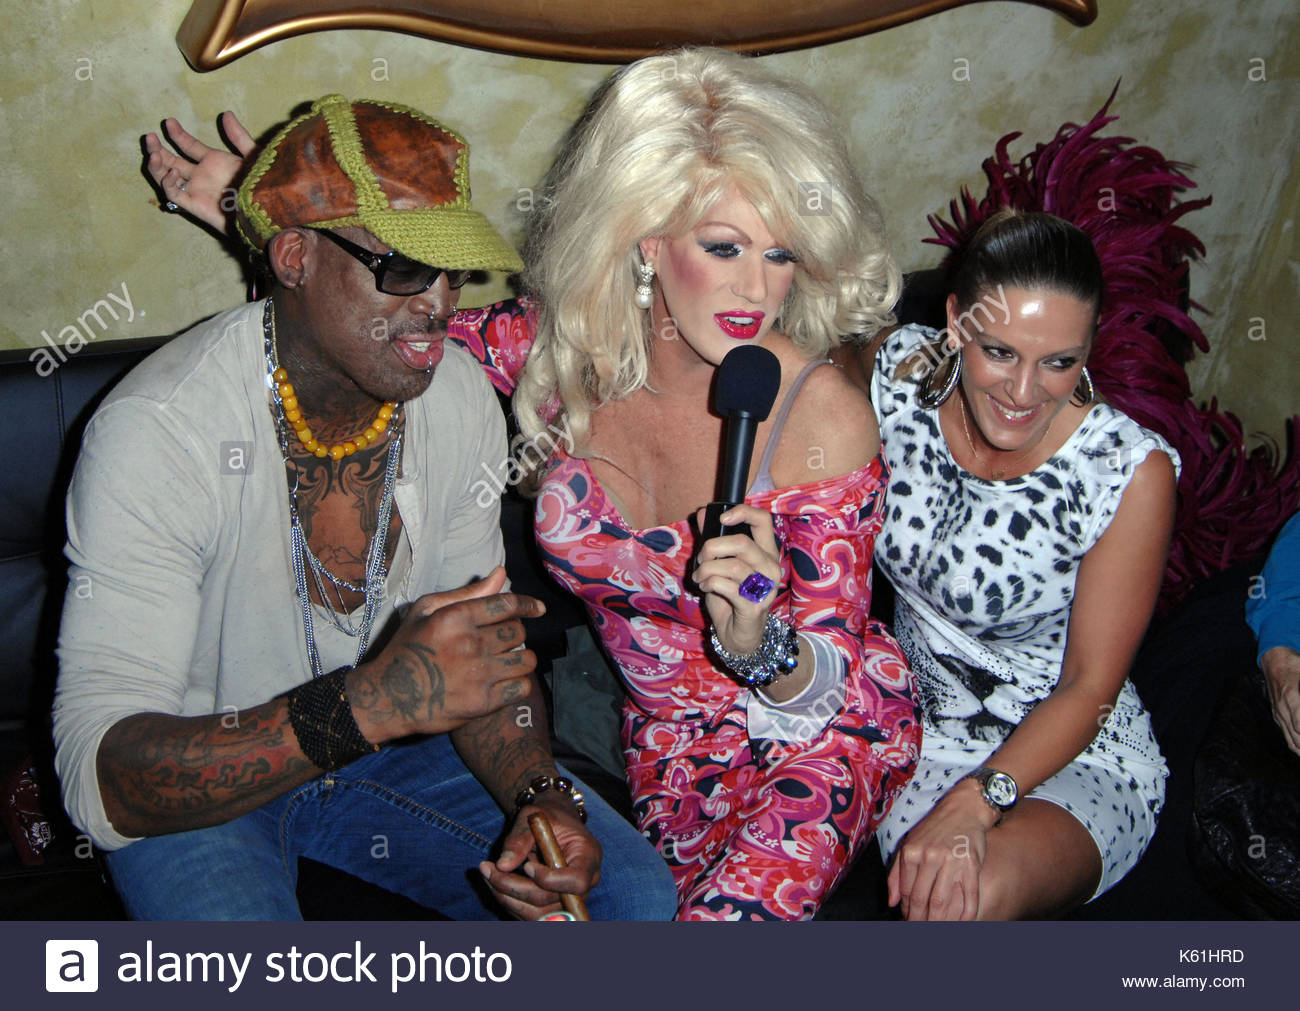 dennis rodman and gender identities Dennis keith rodman (born may 13, 1961) is an american retired professional basketball player, who played for the detroit pistons, san antonio spurs, chicago bulls, los angeles lakers, and dallas mavericks in the national basketball association (nba.